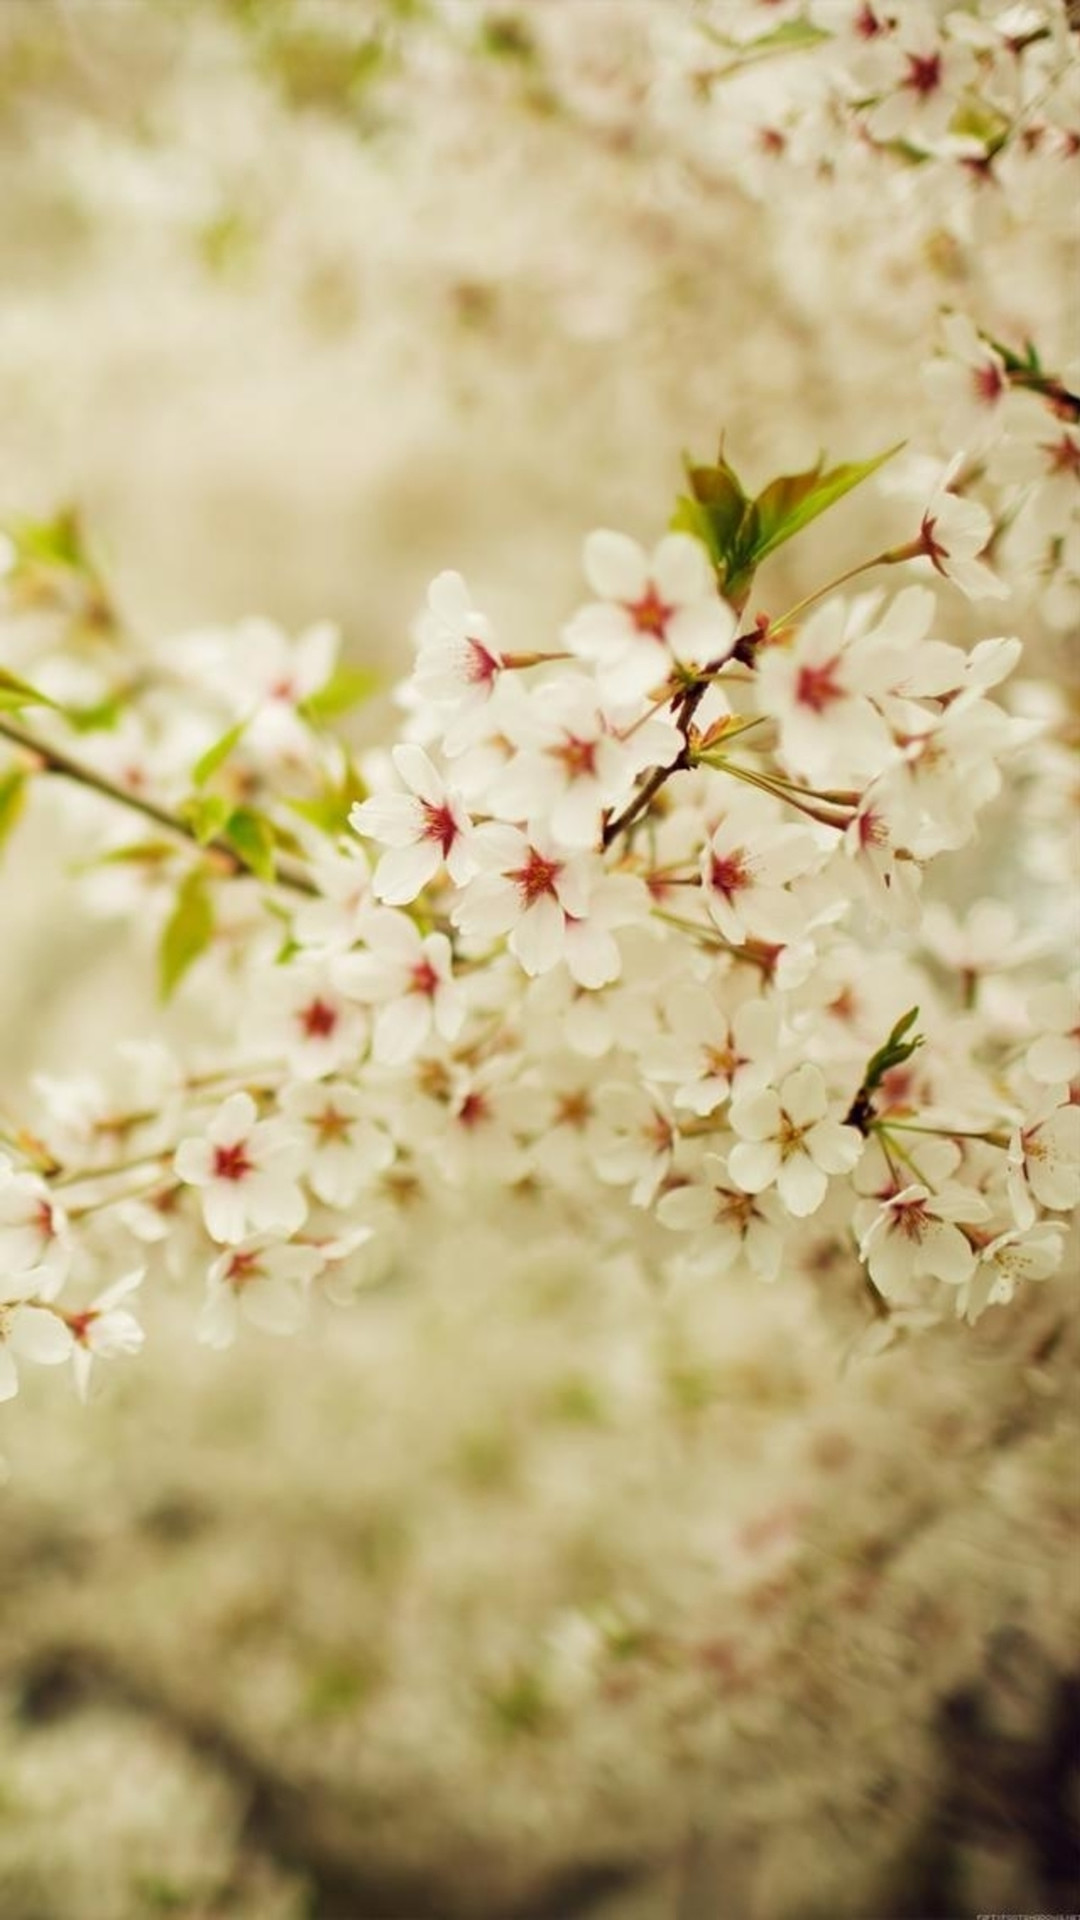 Romantic White Cherry Blossom Branch iPhone 6 wallpaper